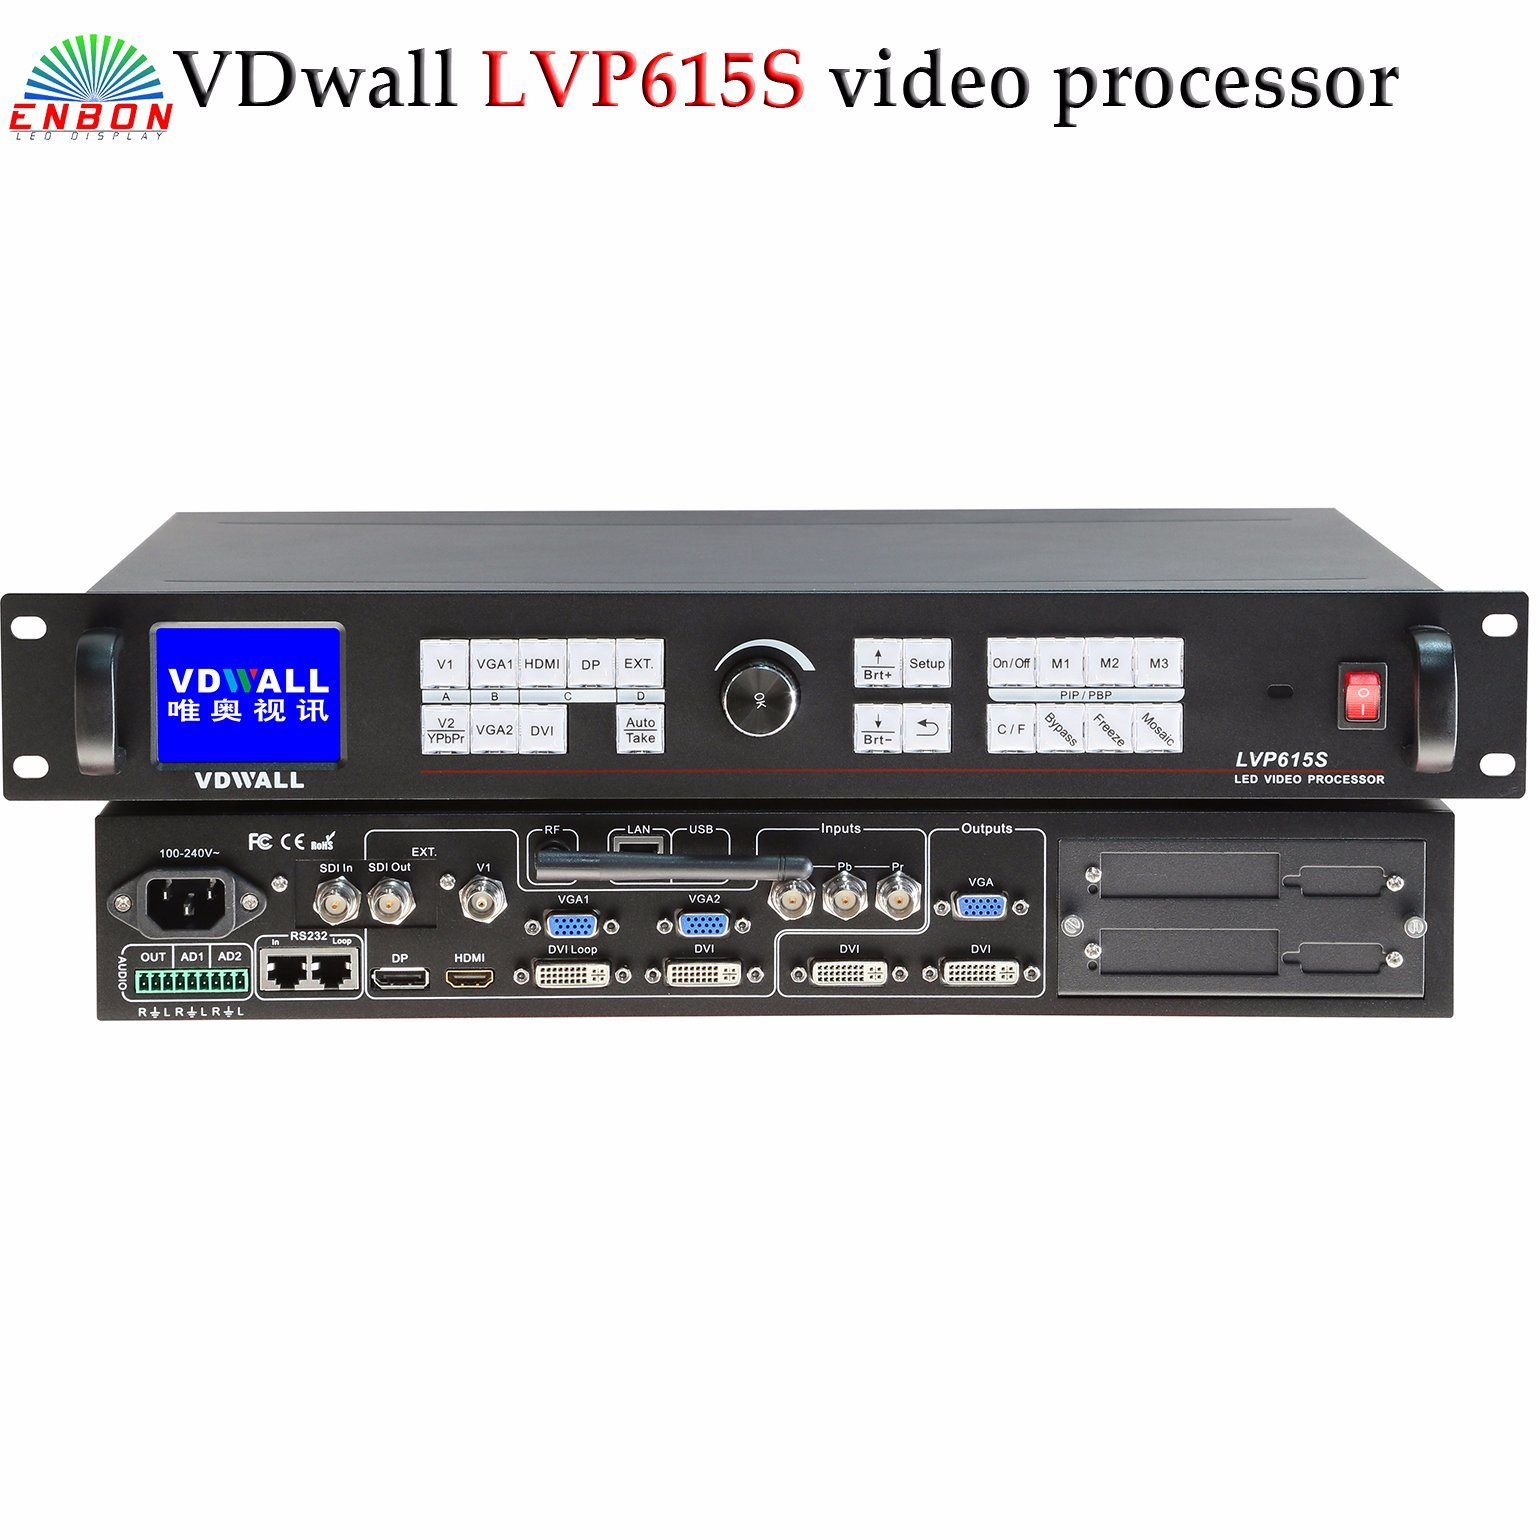 1920*1080 Vdwall Lvp615 Series HD Resolution LED Video Processor